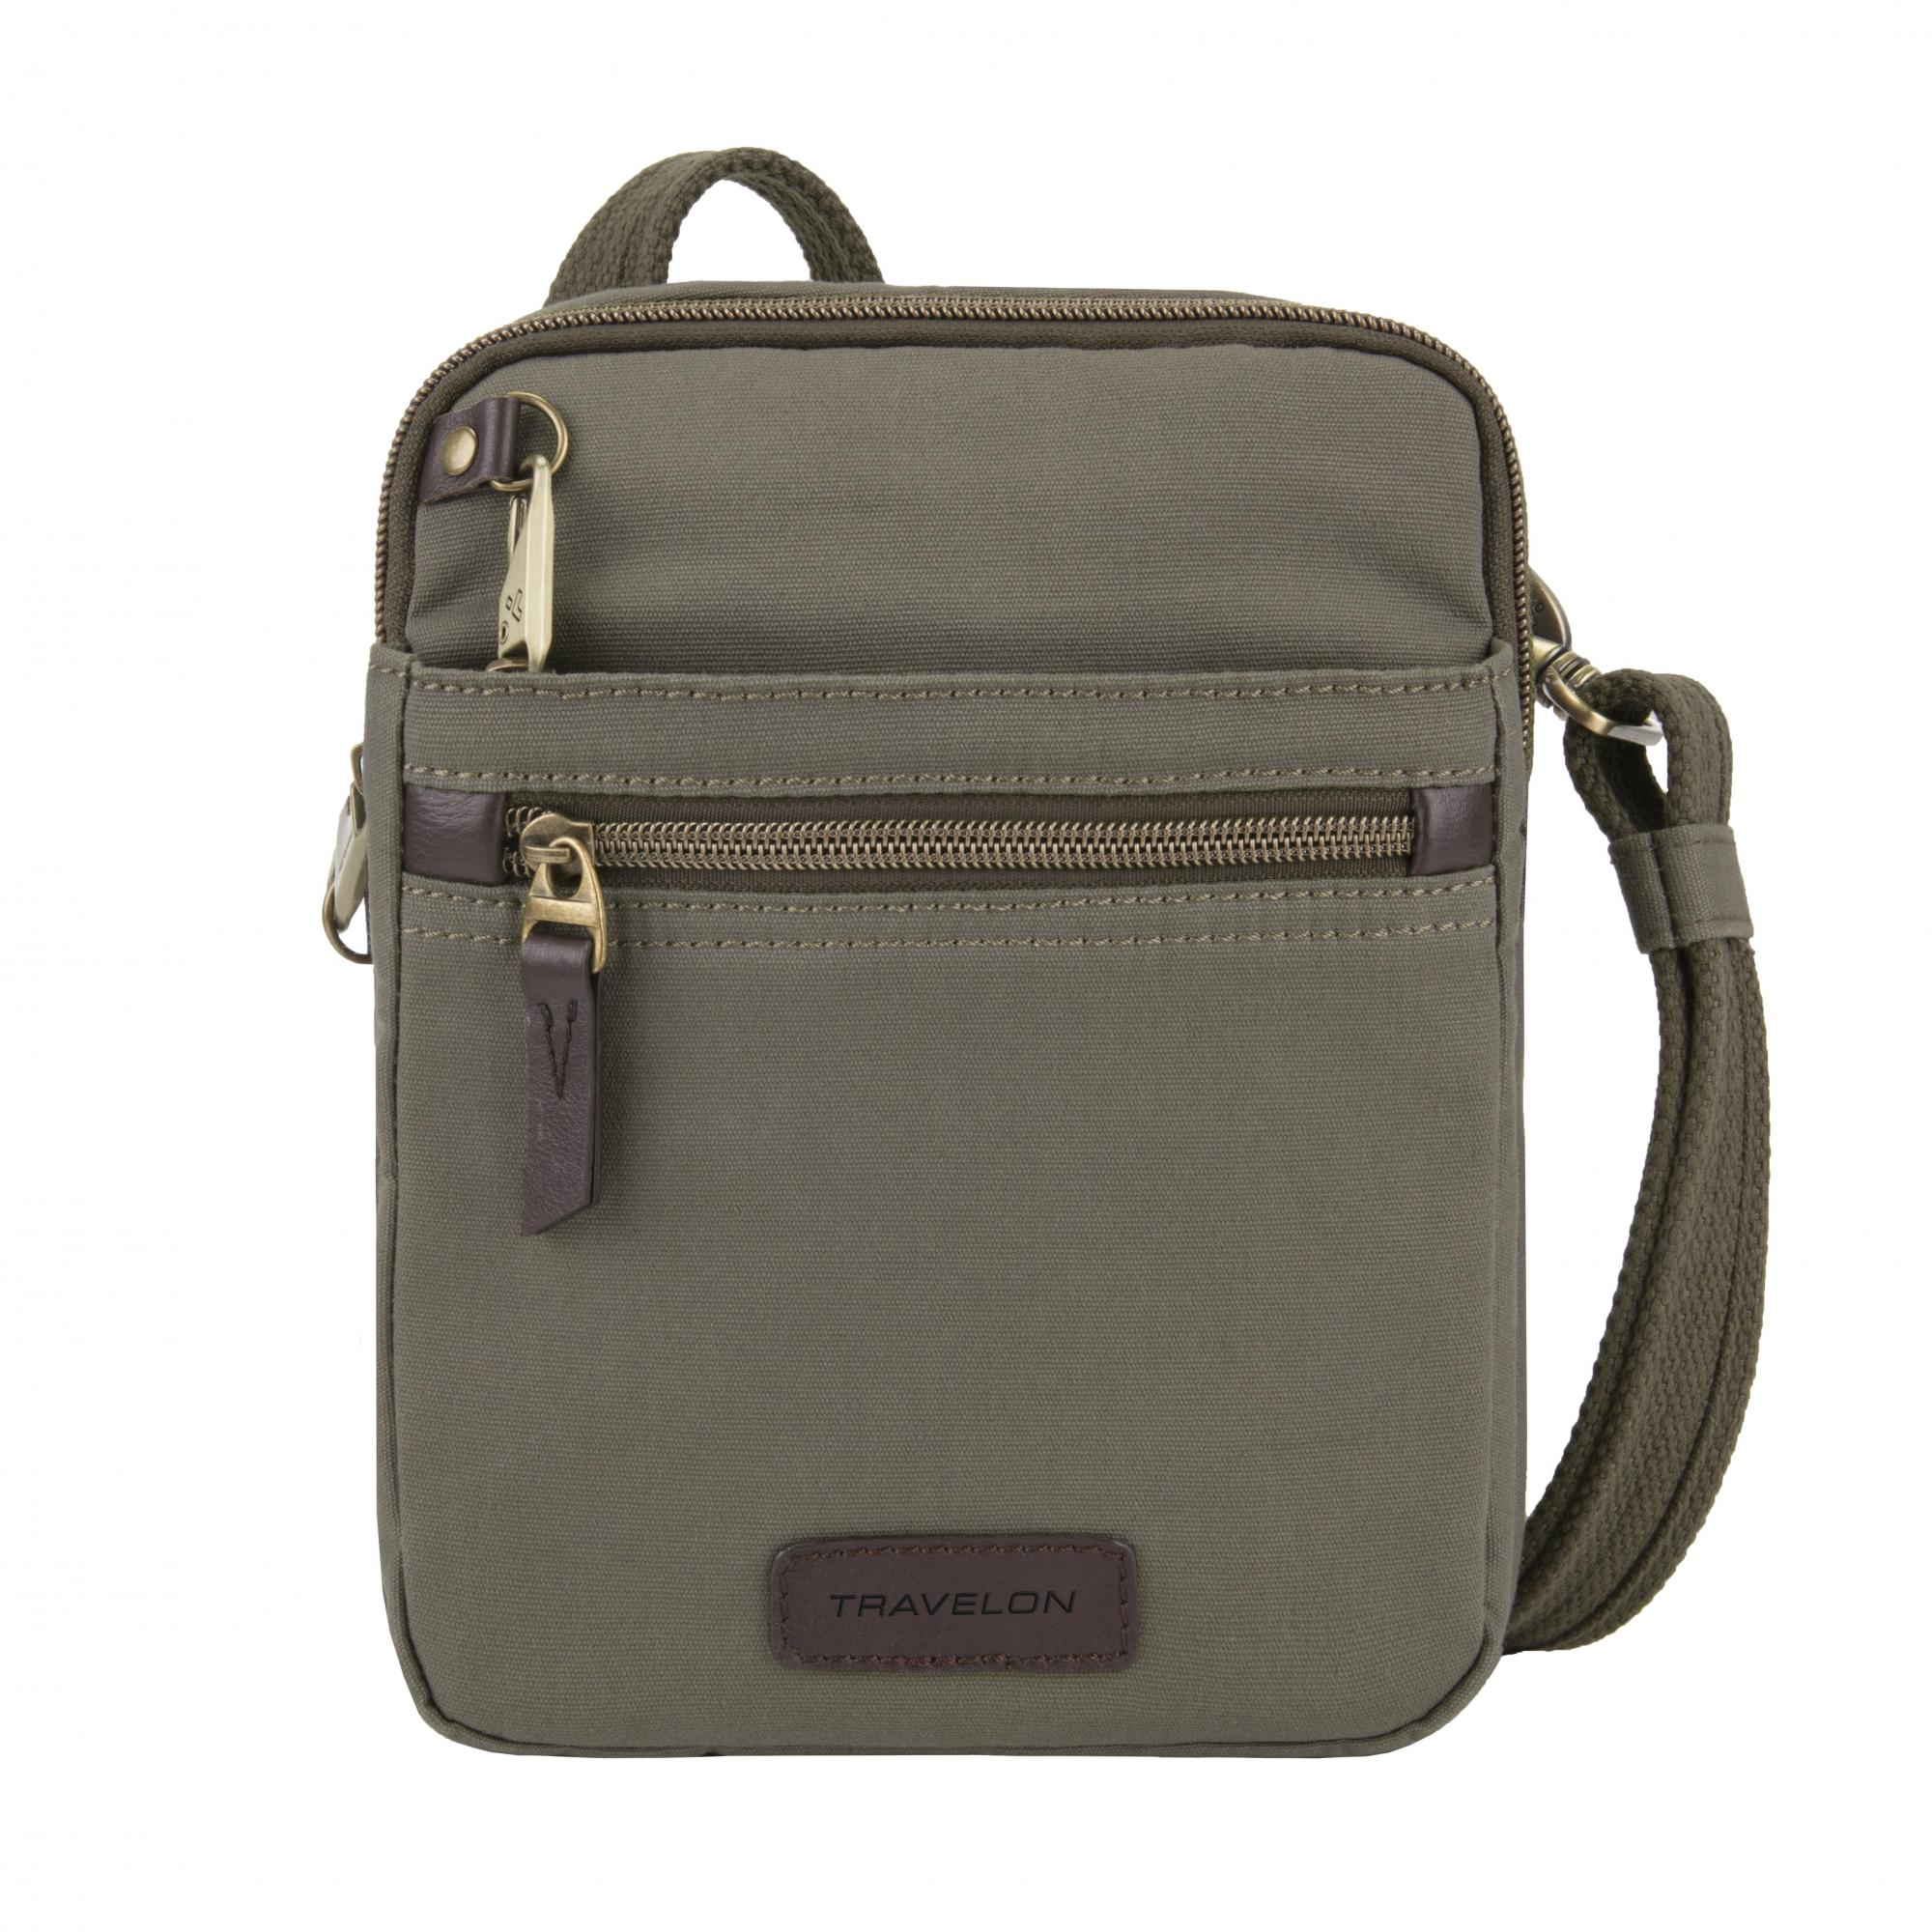 "Travelon Anti-Theft Courier Small North/South Slim Bag  8"" x 9"" x 2"""